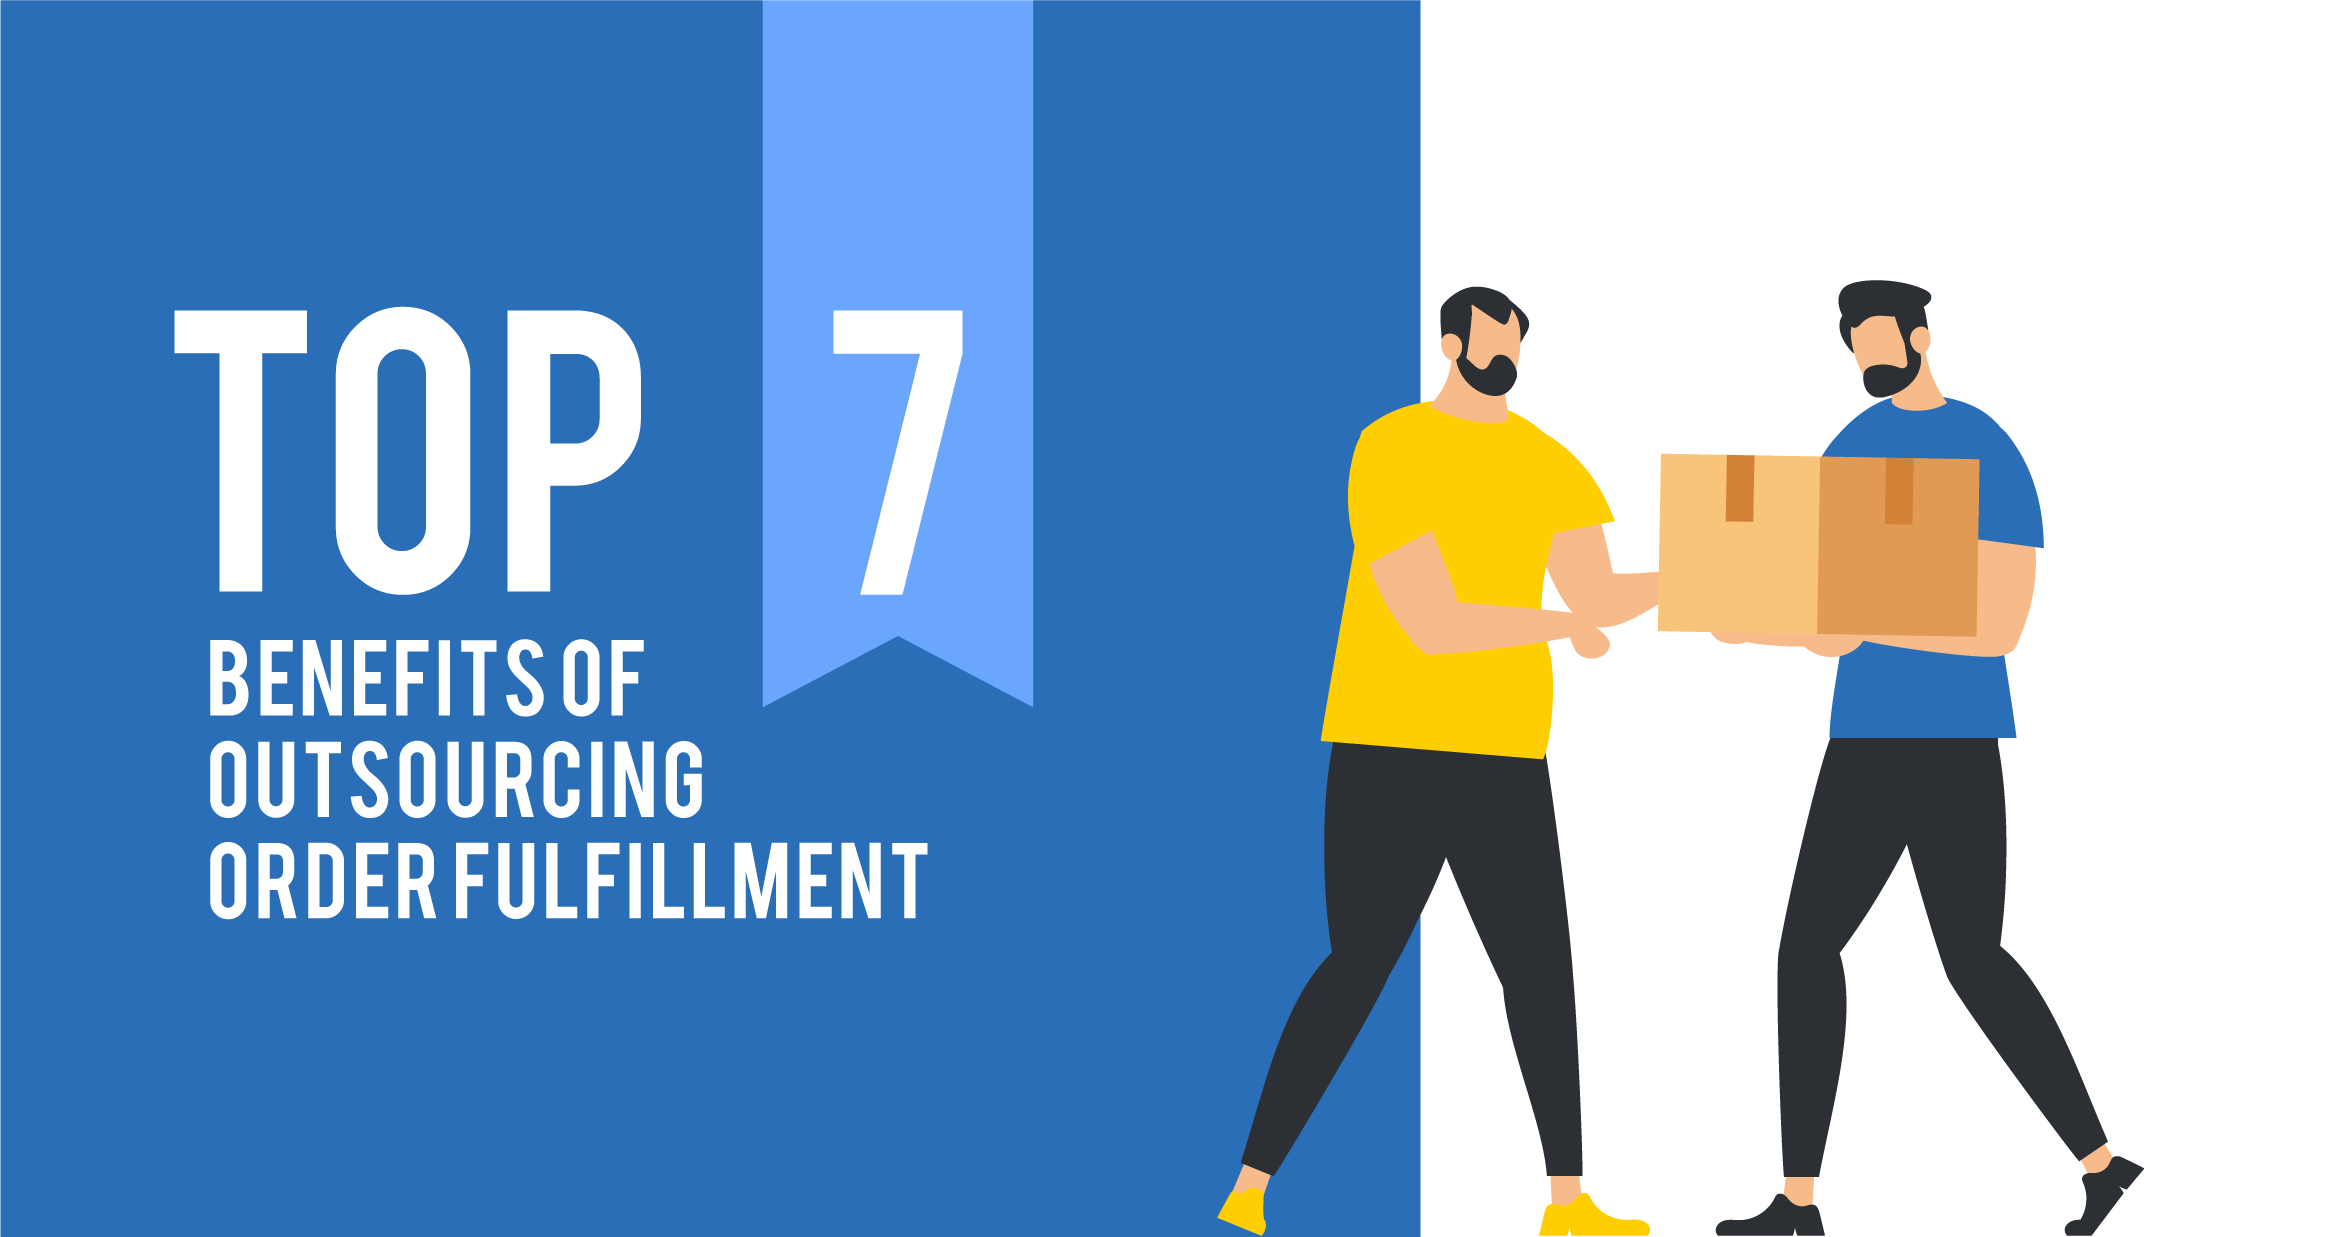 Top 7 Benefits of Outsourcing Order Fulfillment